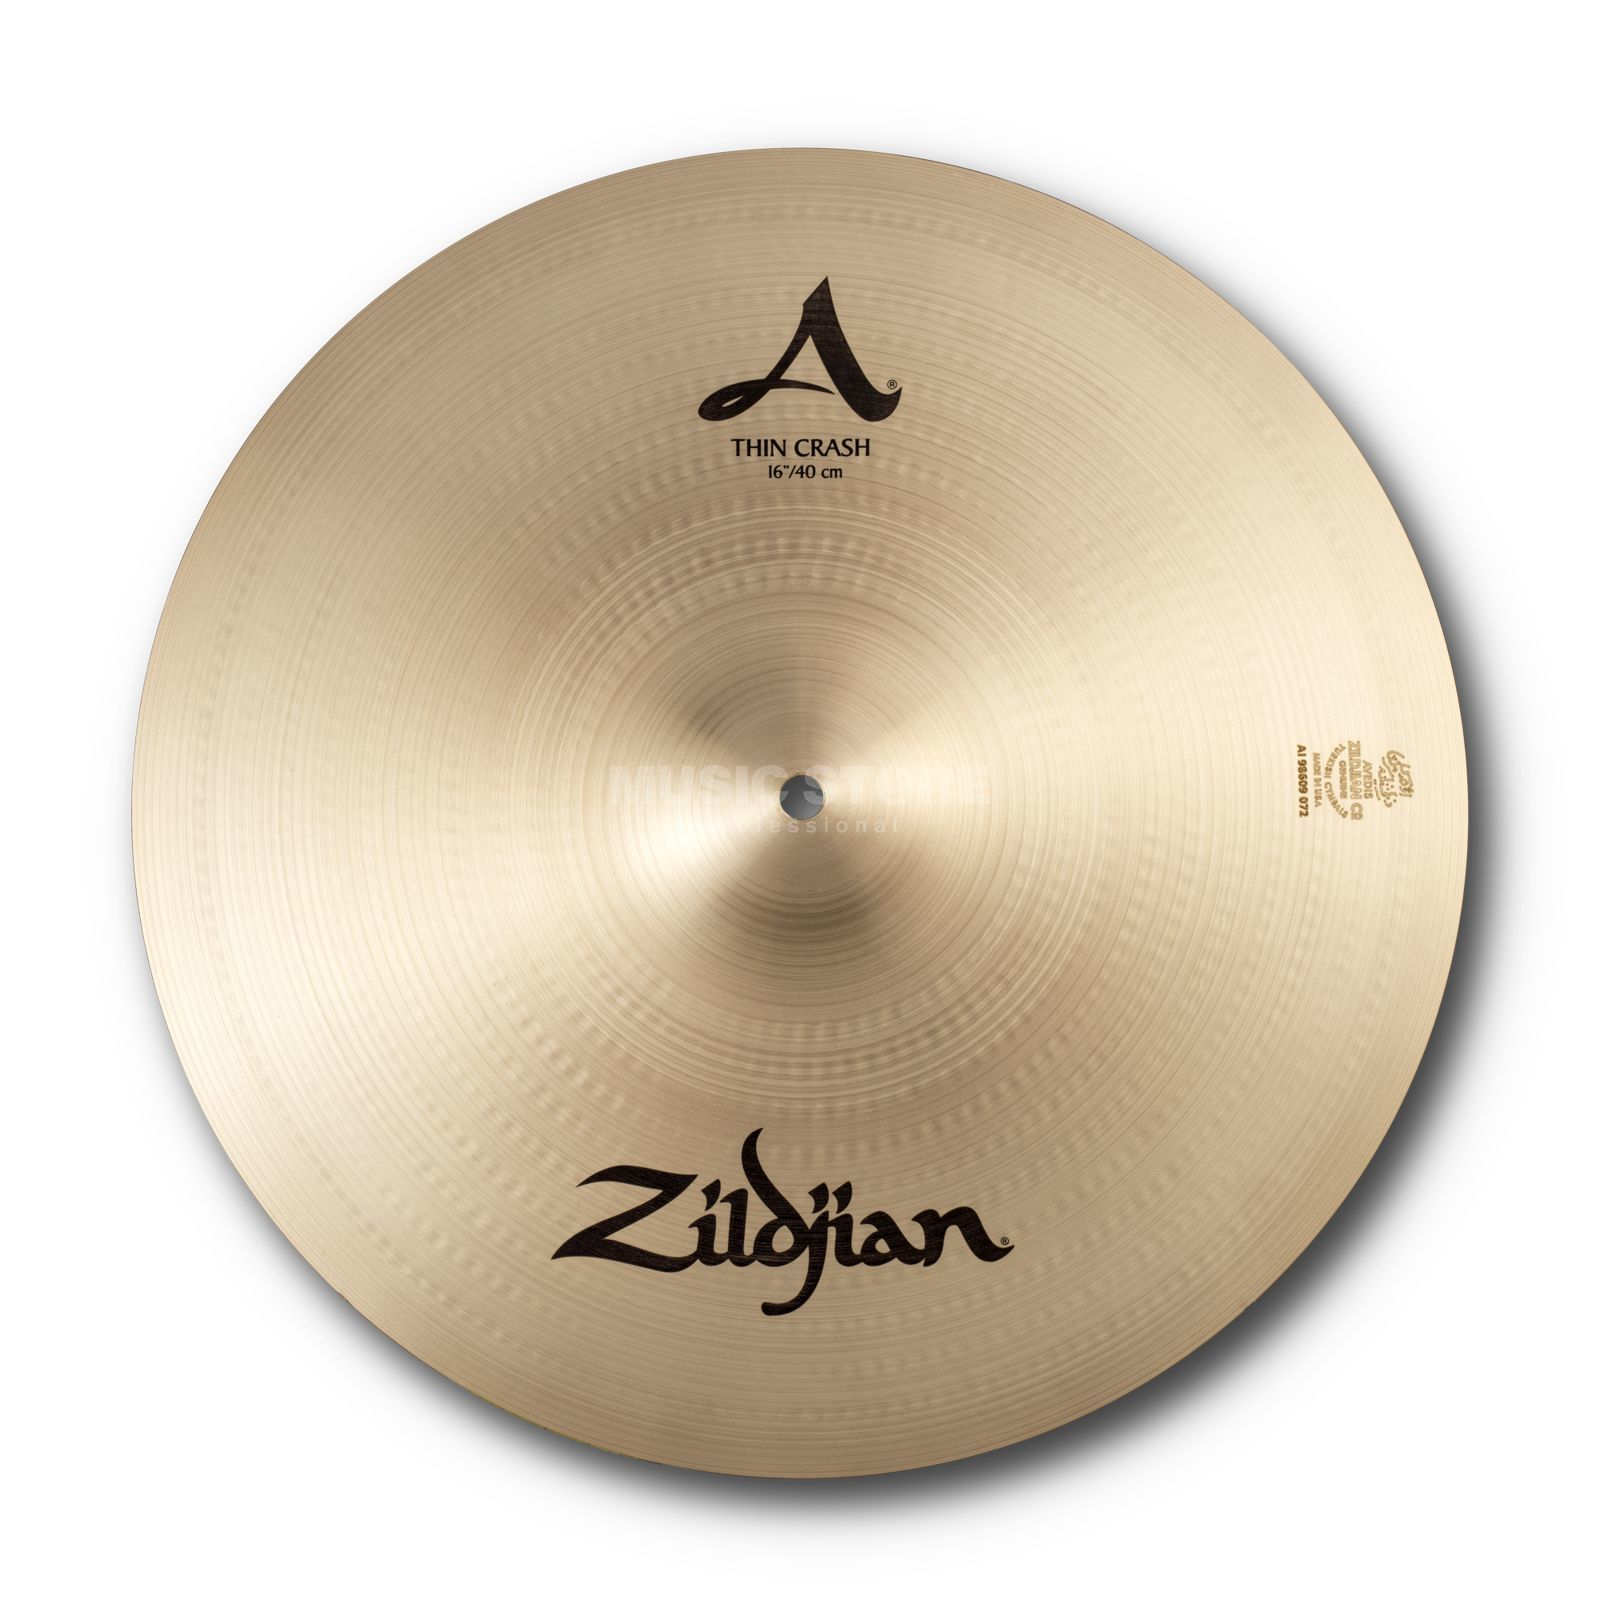 "Zildjian A' Zildjian Thin Crash 16"", Traditional Finish Imagem do produto"